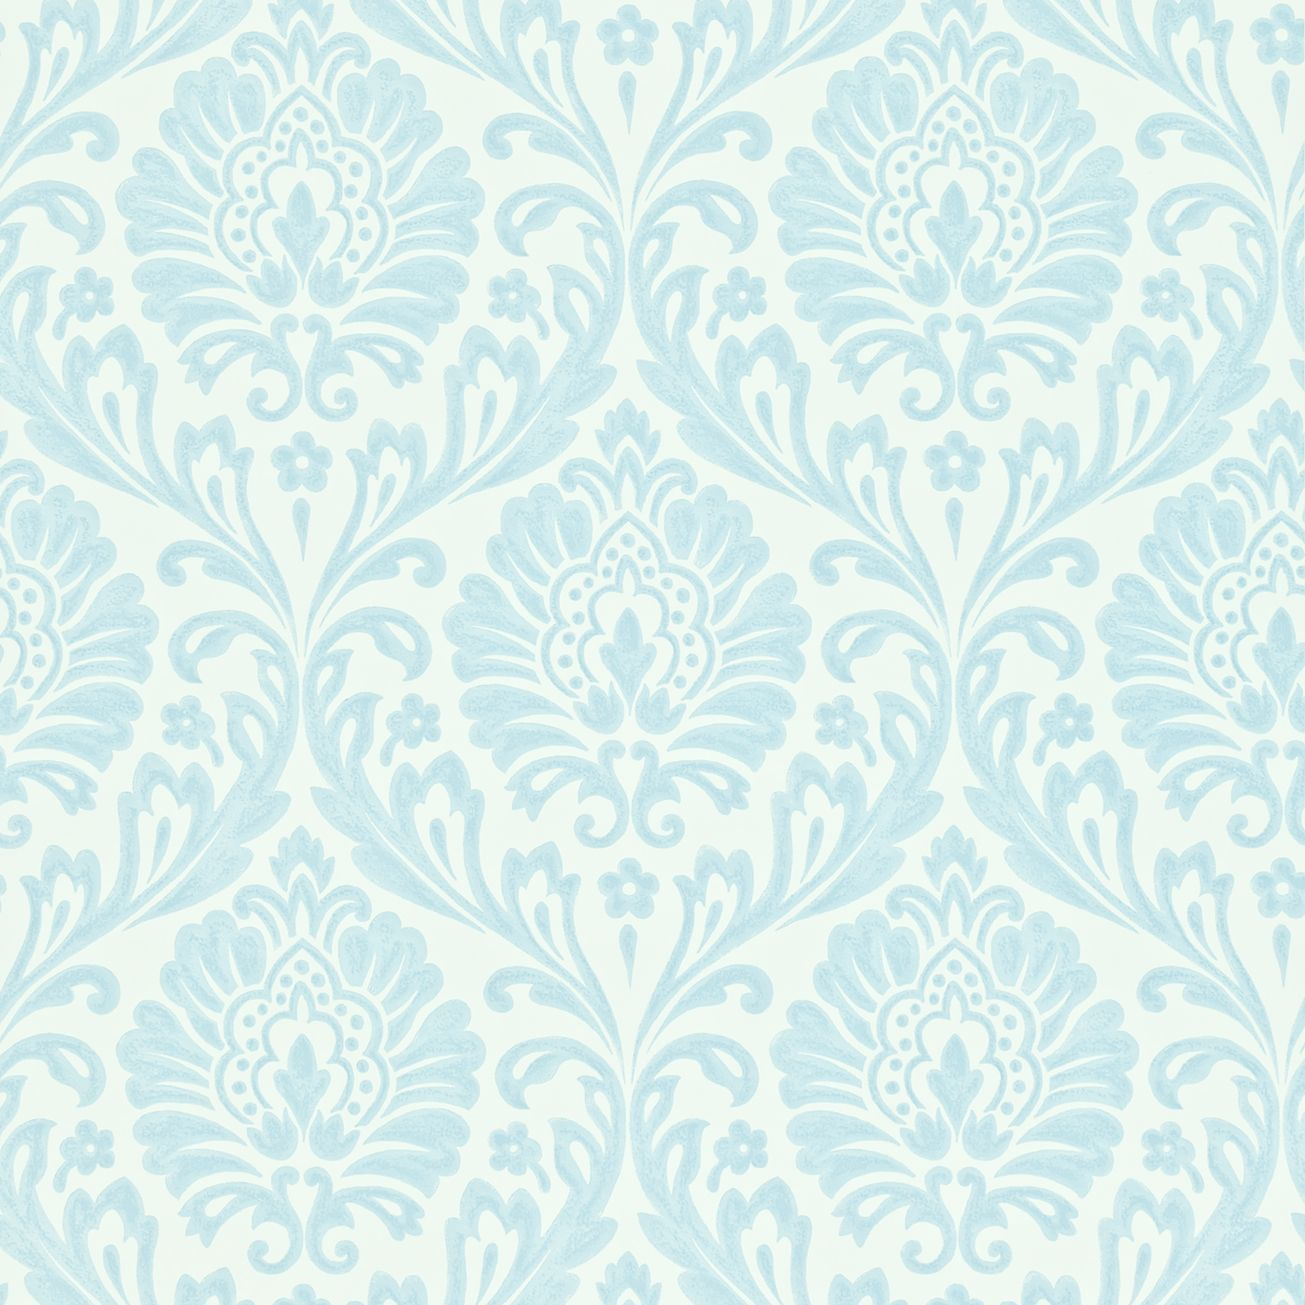 Damask Wallpaper Maycott Wallpapers Collection Sanderson Wallpaper 1305x1305